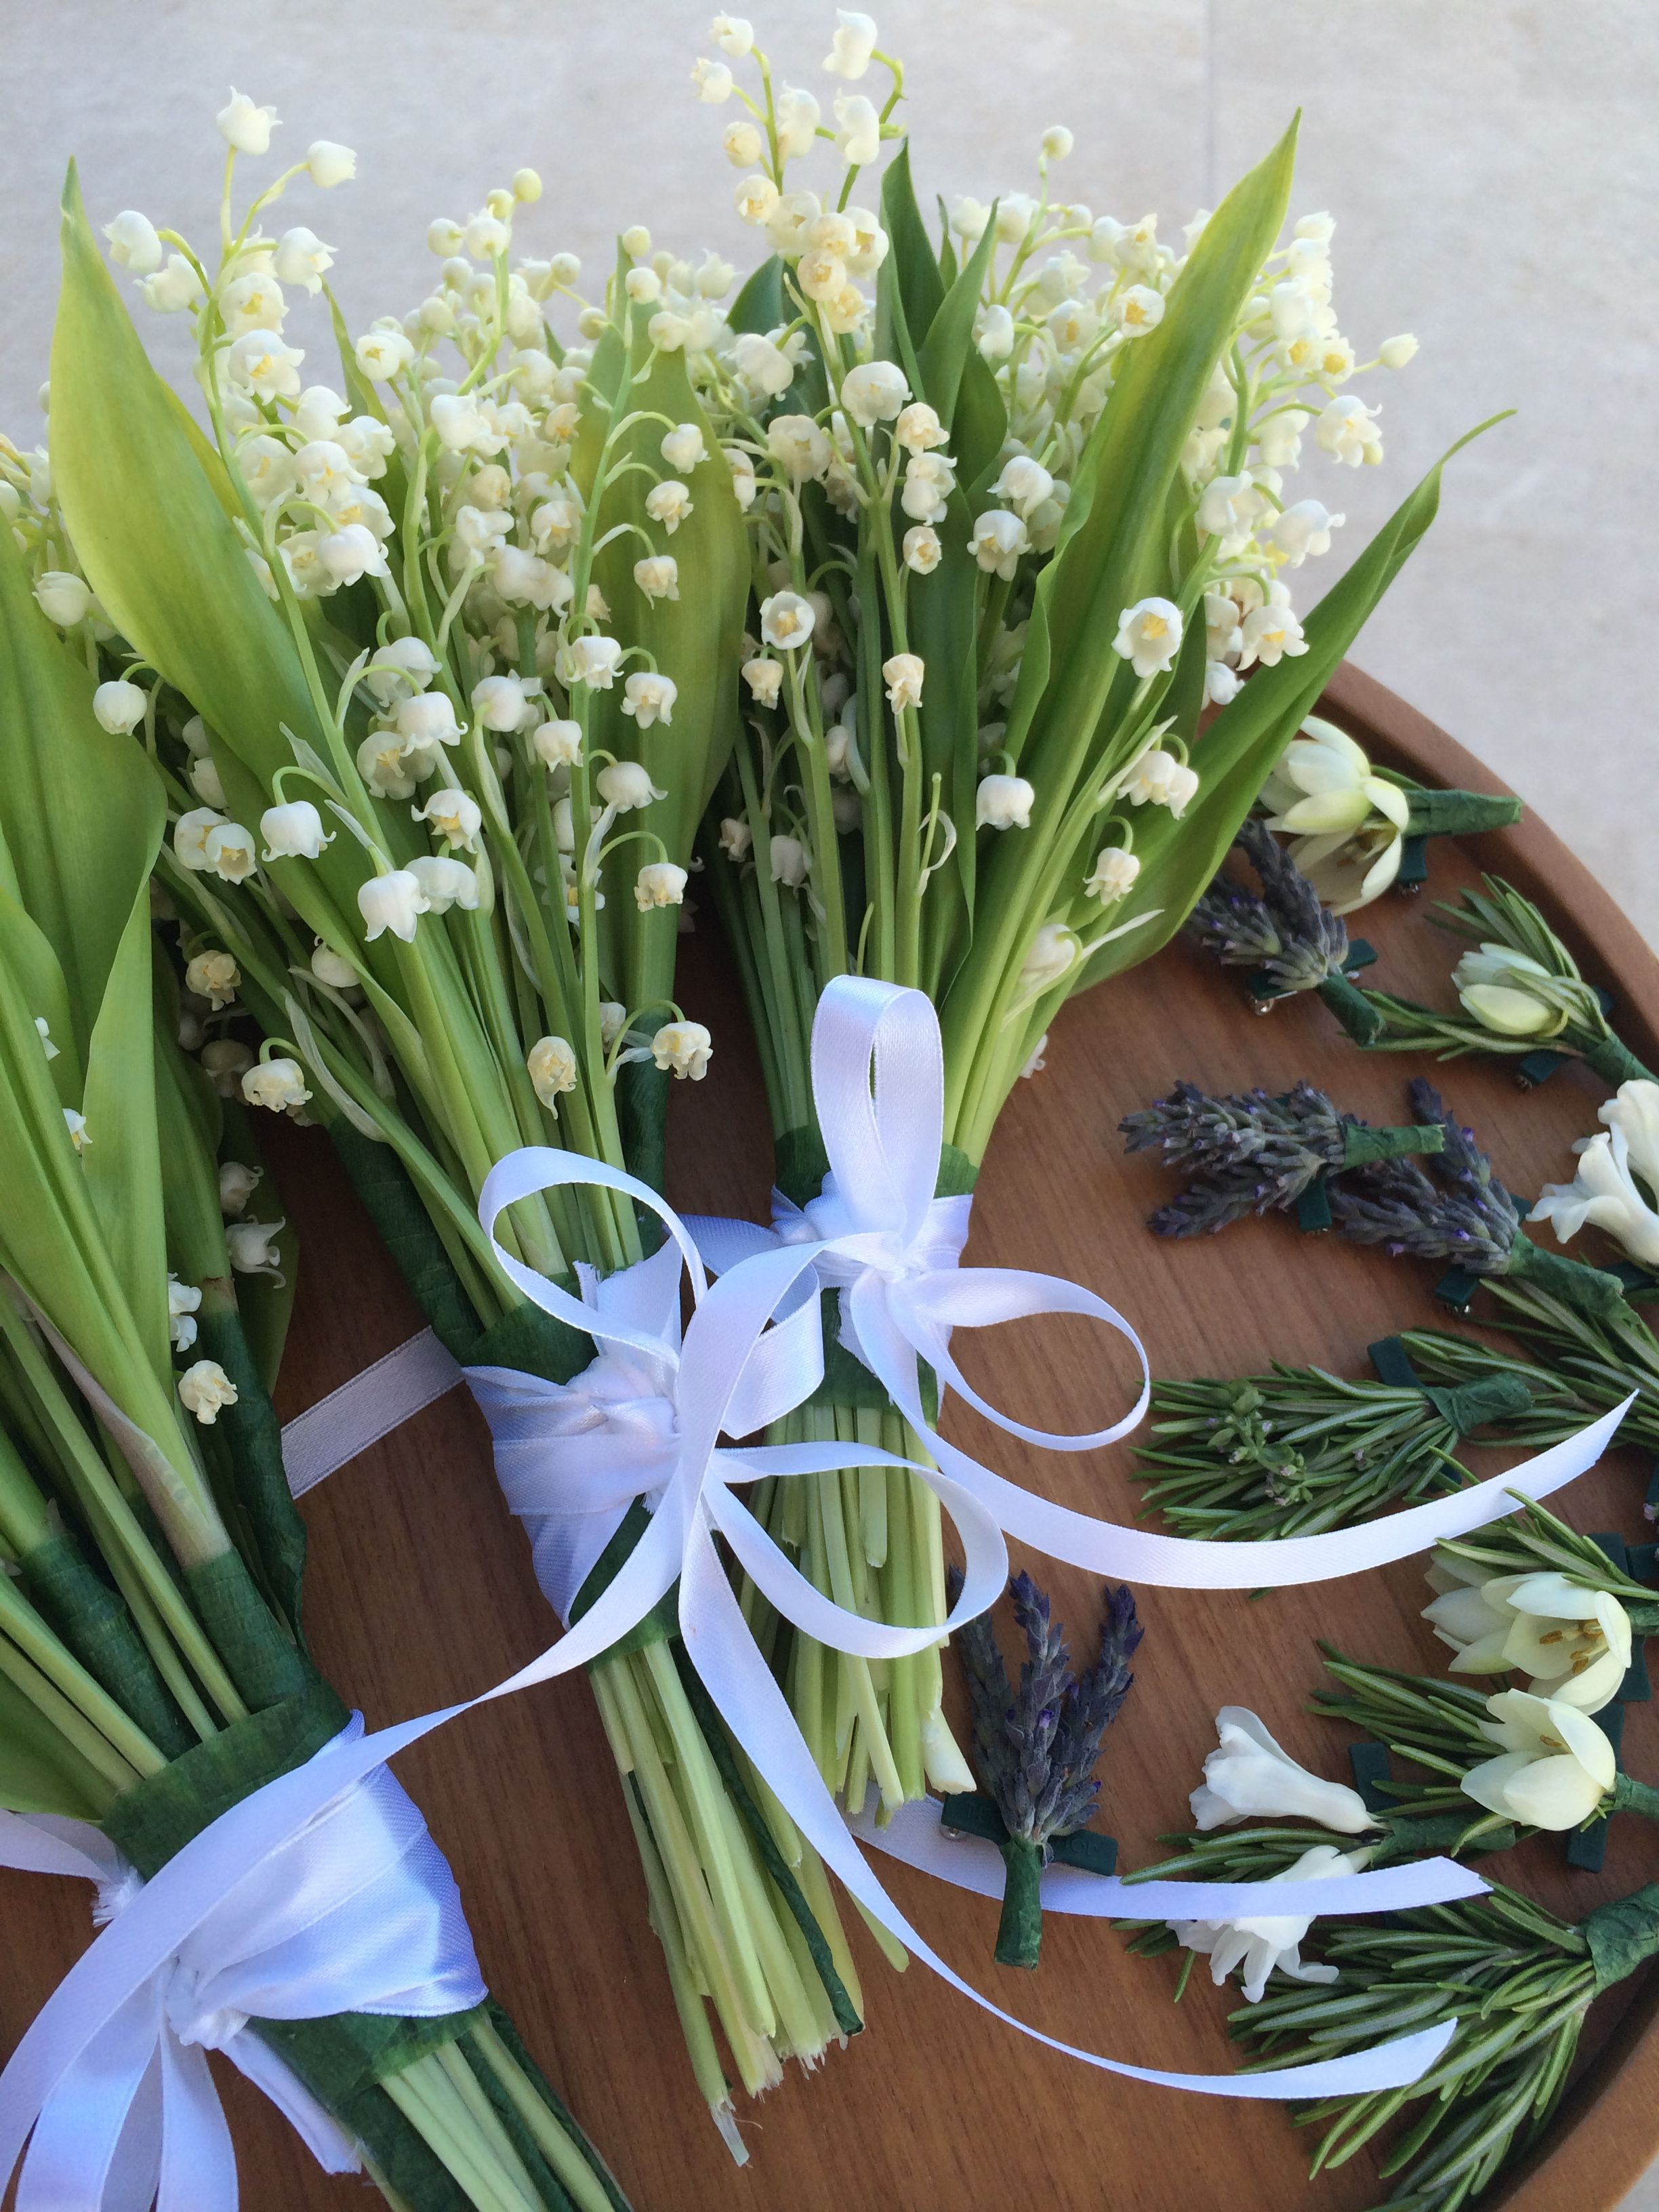 Lilly of the valley bouquet the language of flowers the lily lilly of the valley bouquet the language of flowers the lily of the valley signifies the return of happiness wedding fleria fleria izmirmasajfo